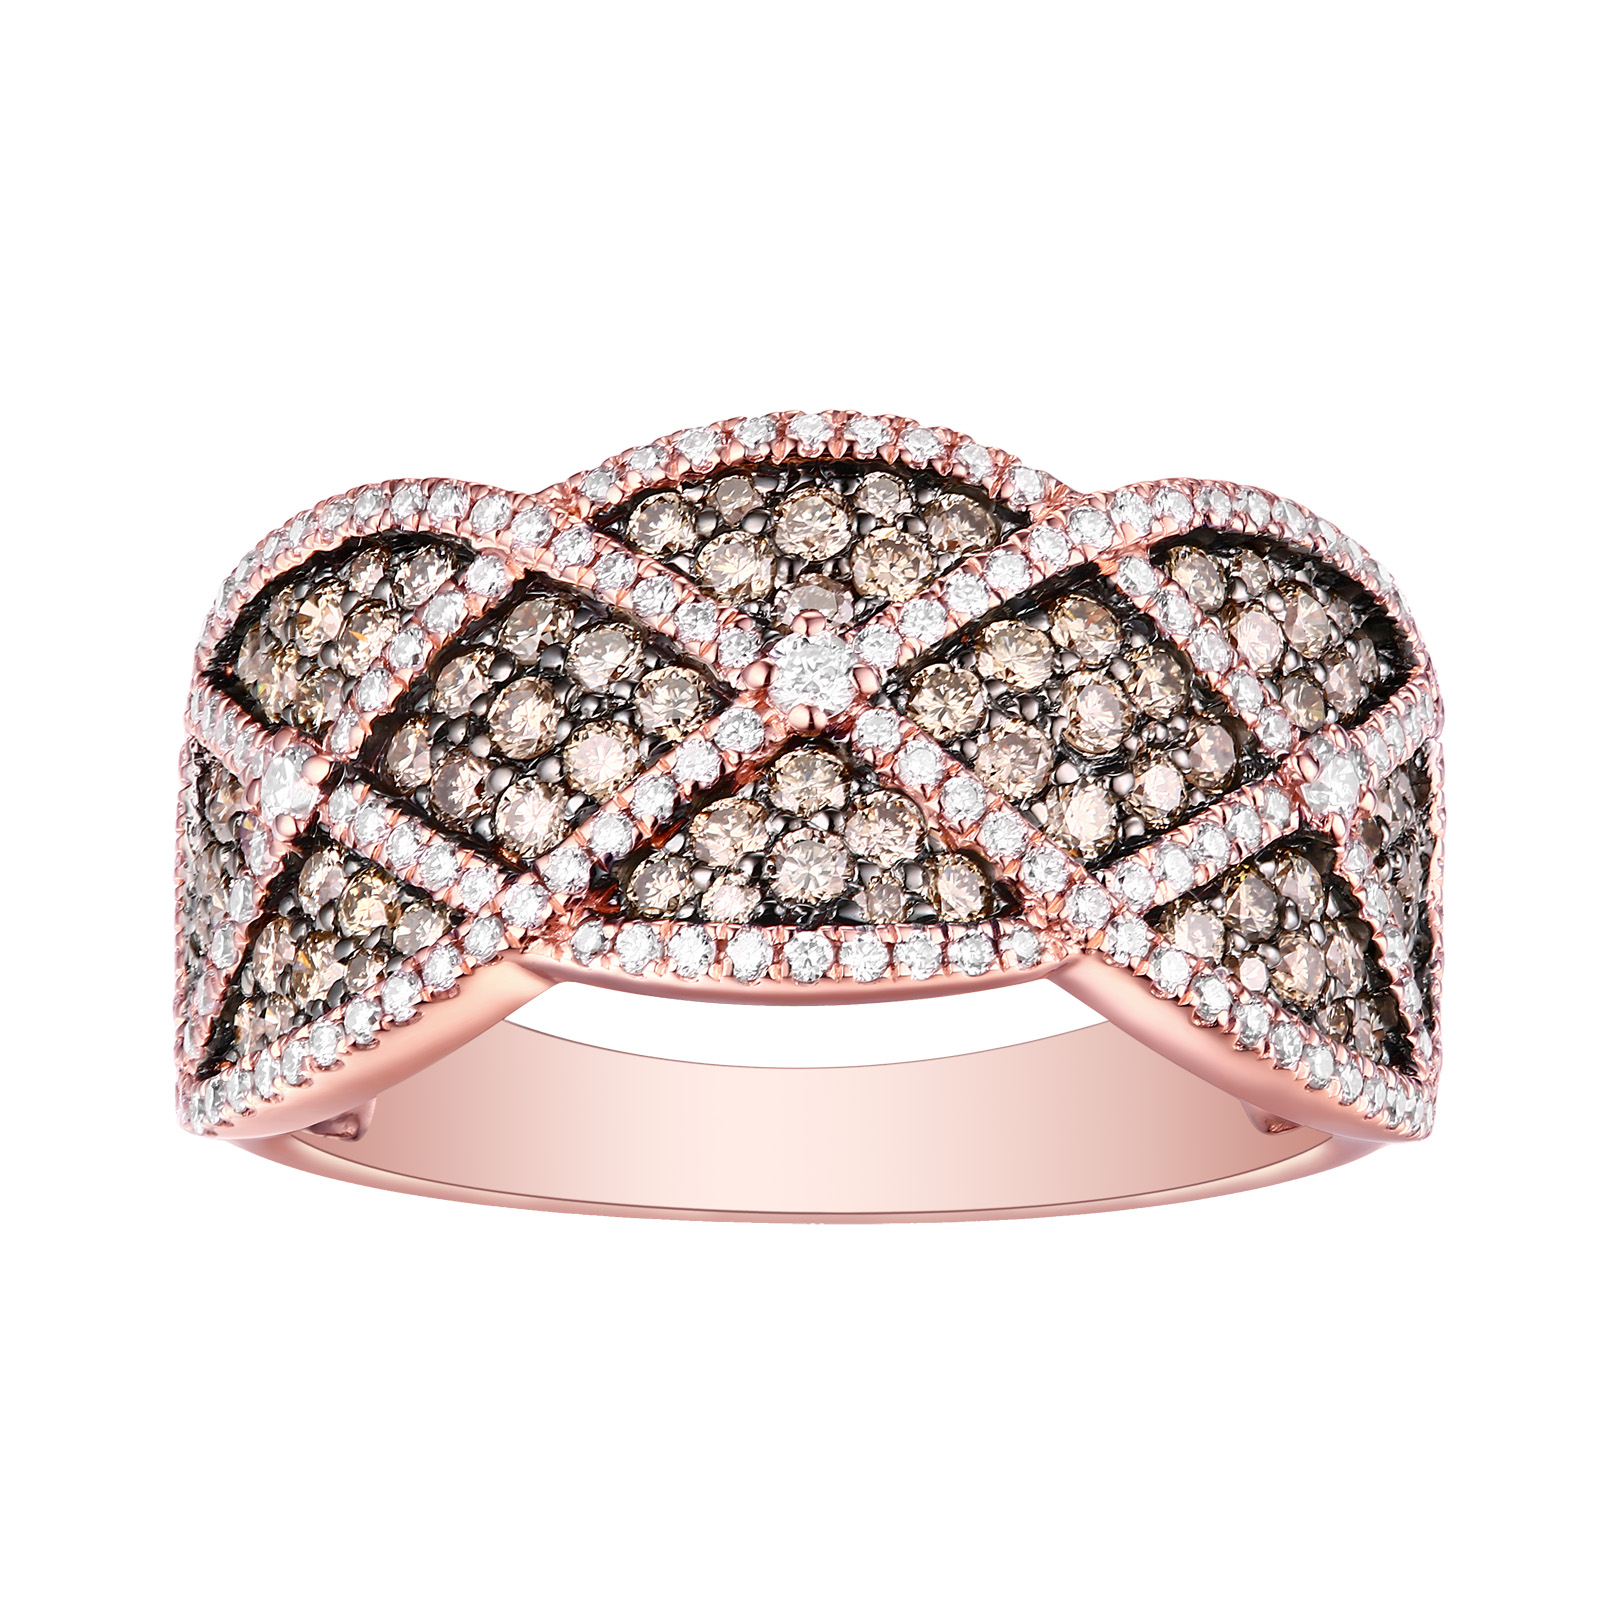 R26231BRN- 14K Rose Gold Diamond Ring, 1.20 TCW